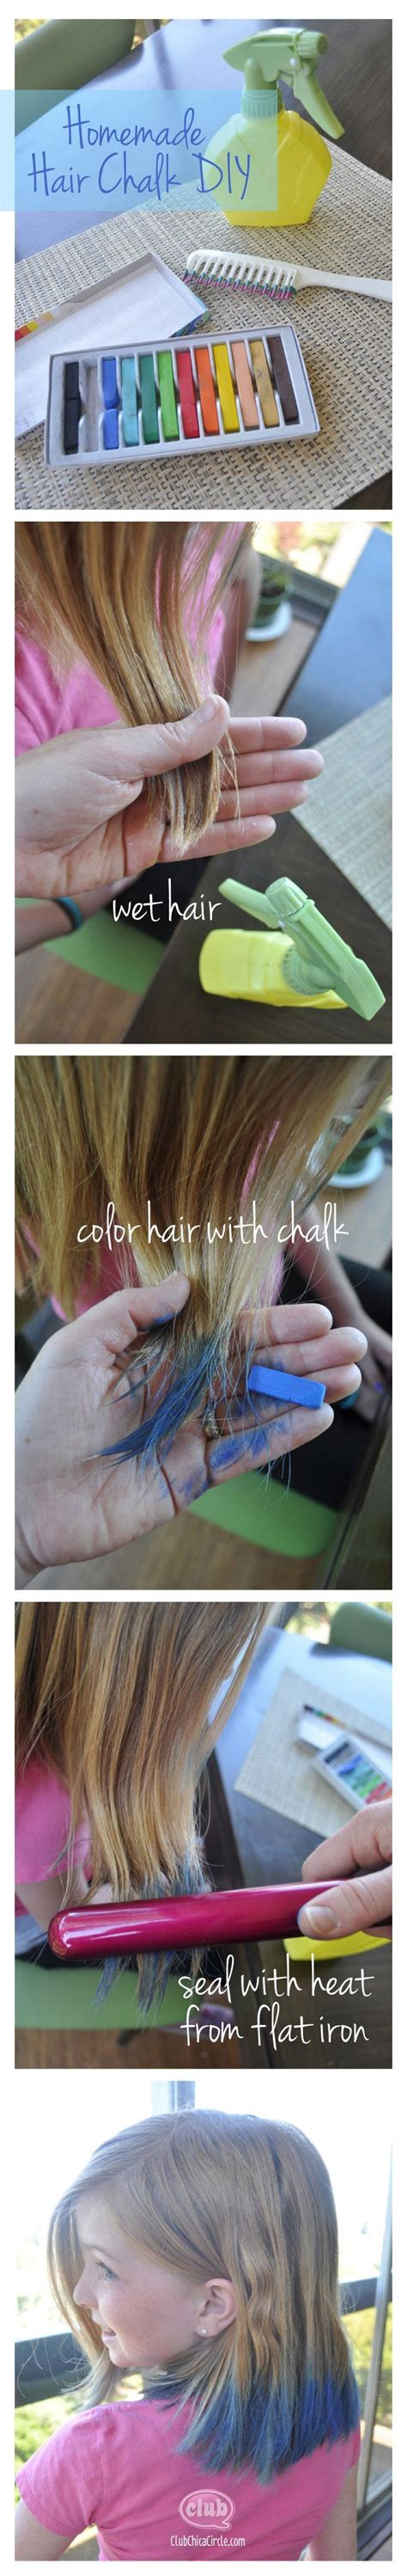 hair chalking a new look at diy hair color stylenoted create this cool hair fashion trend at home with the easy